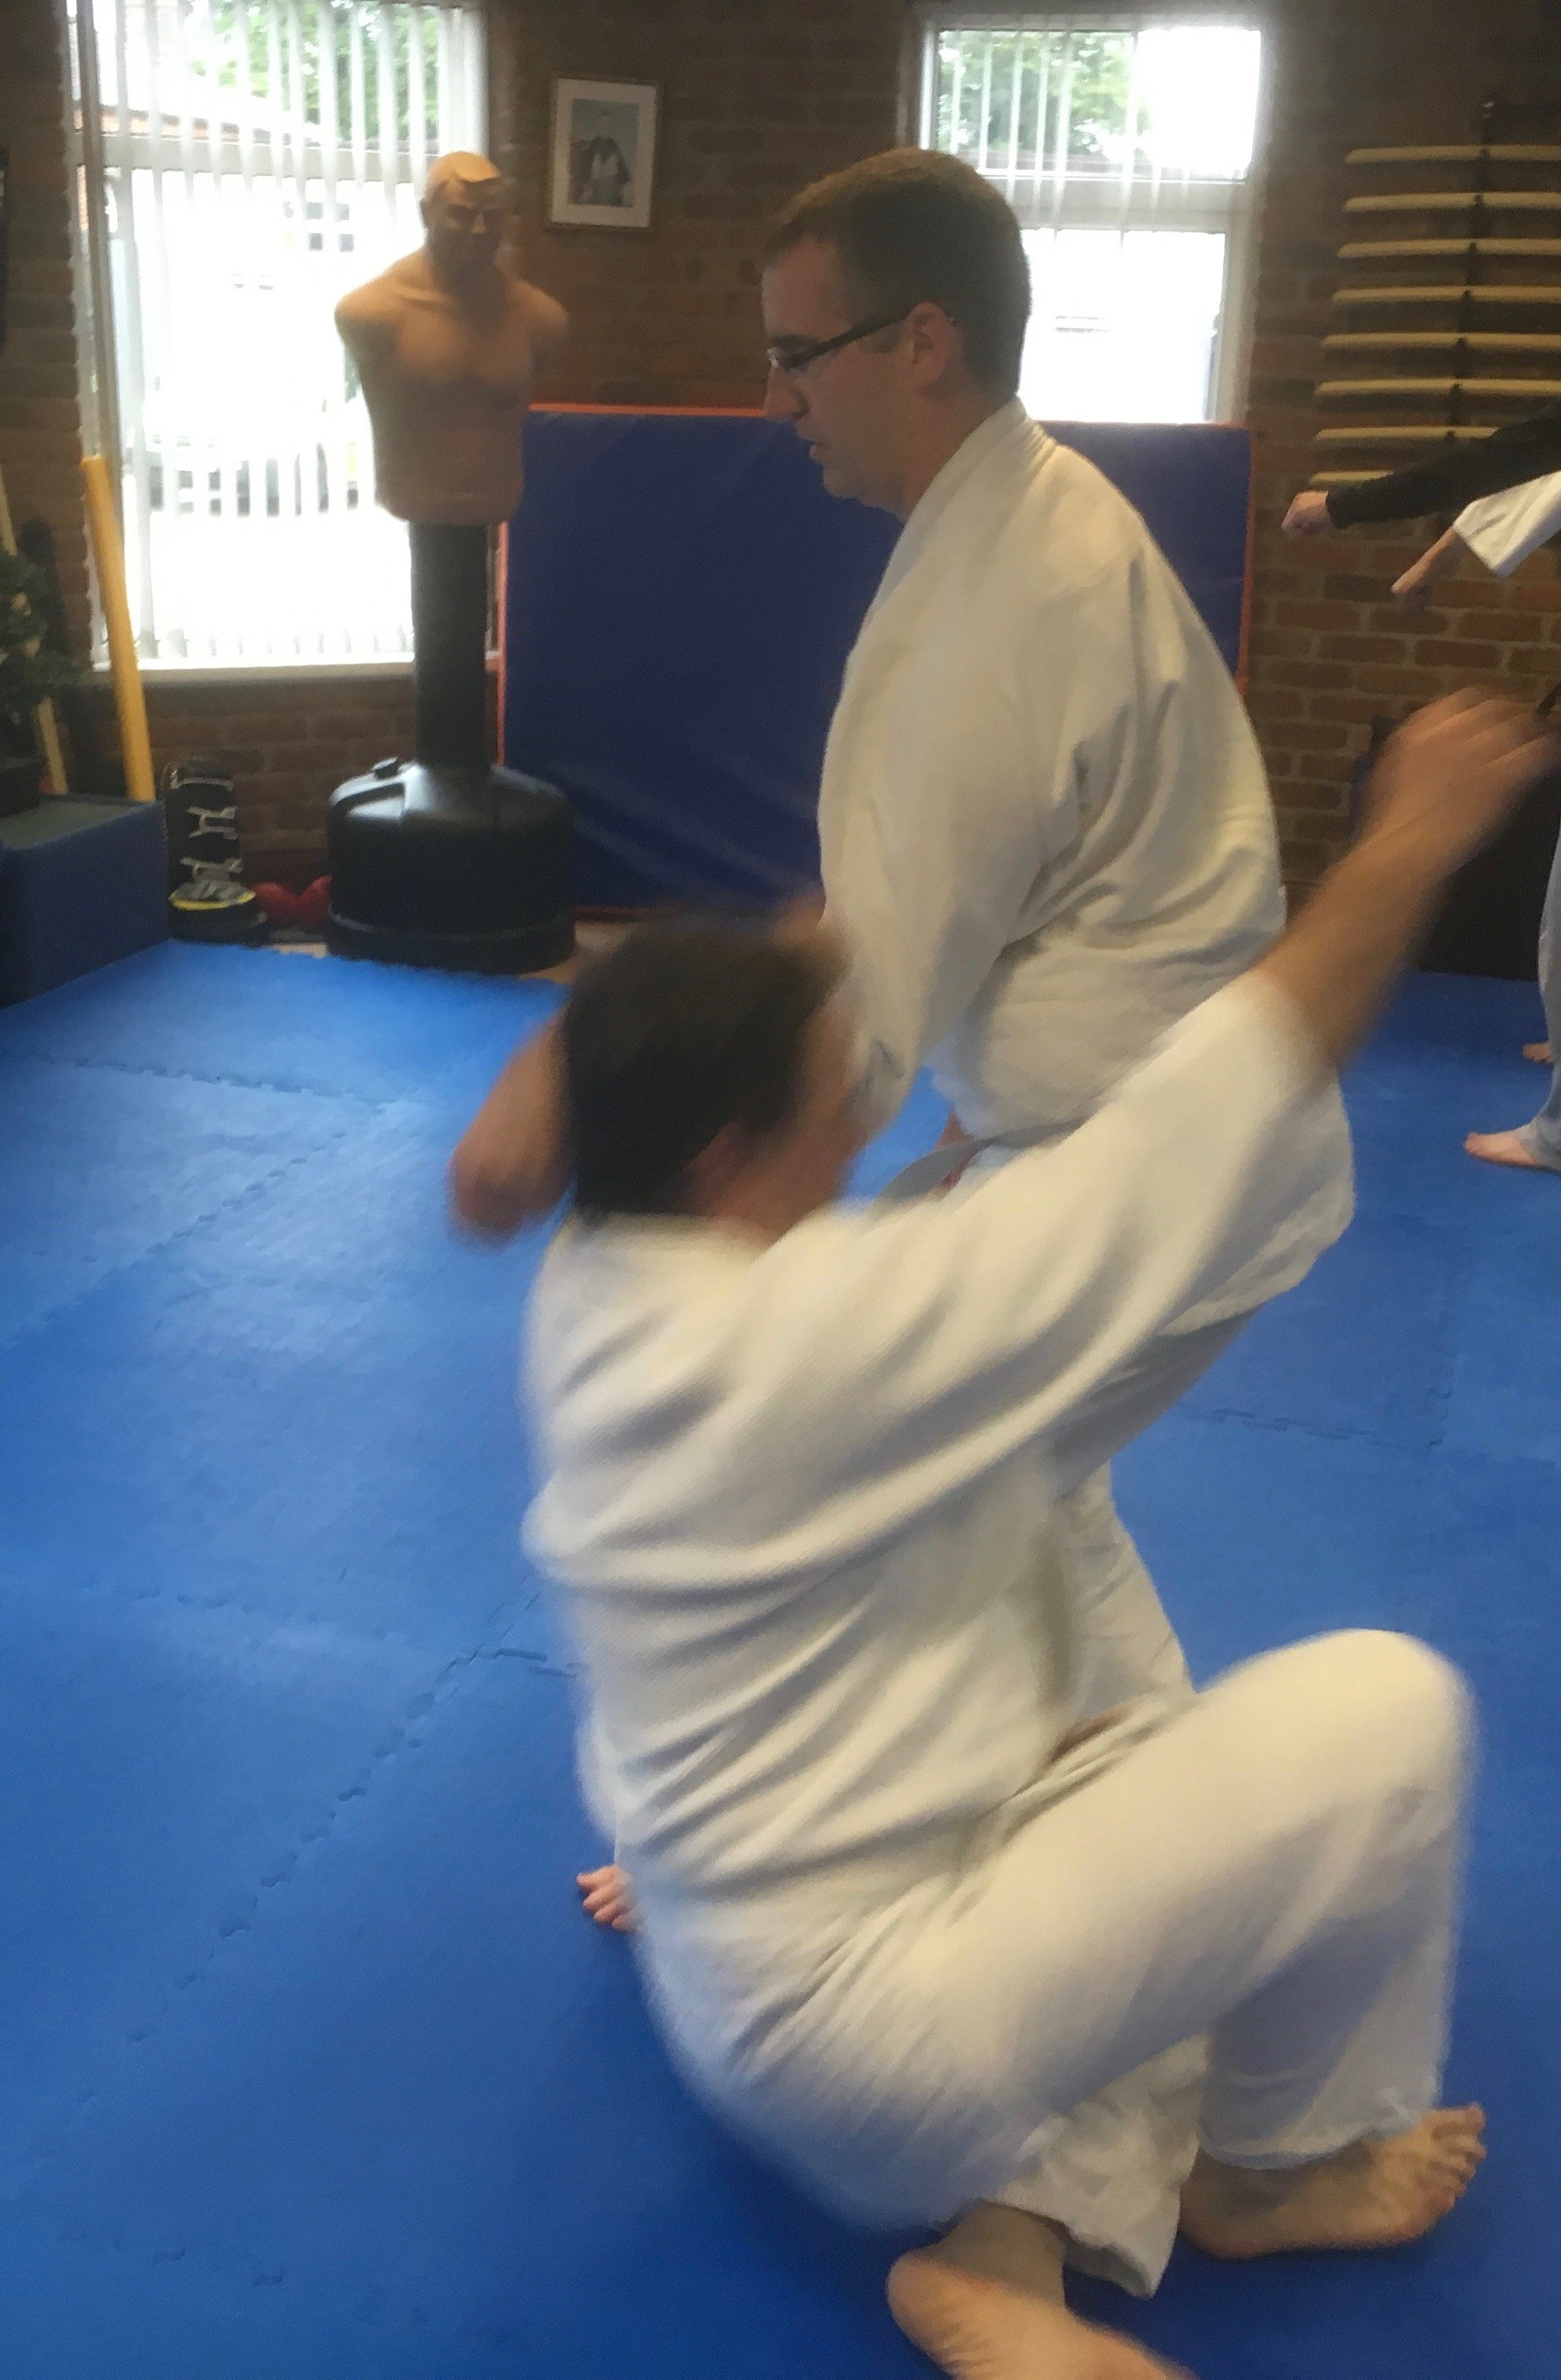 Two students practicing aikido